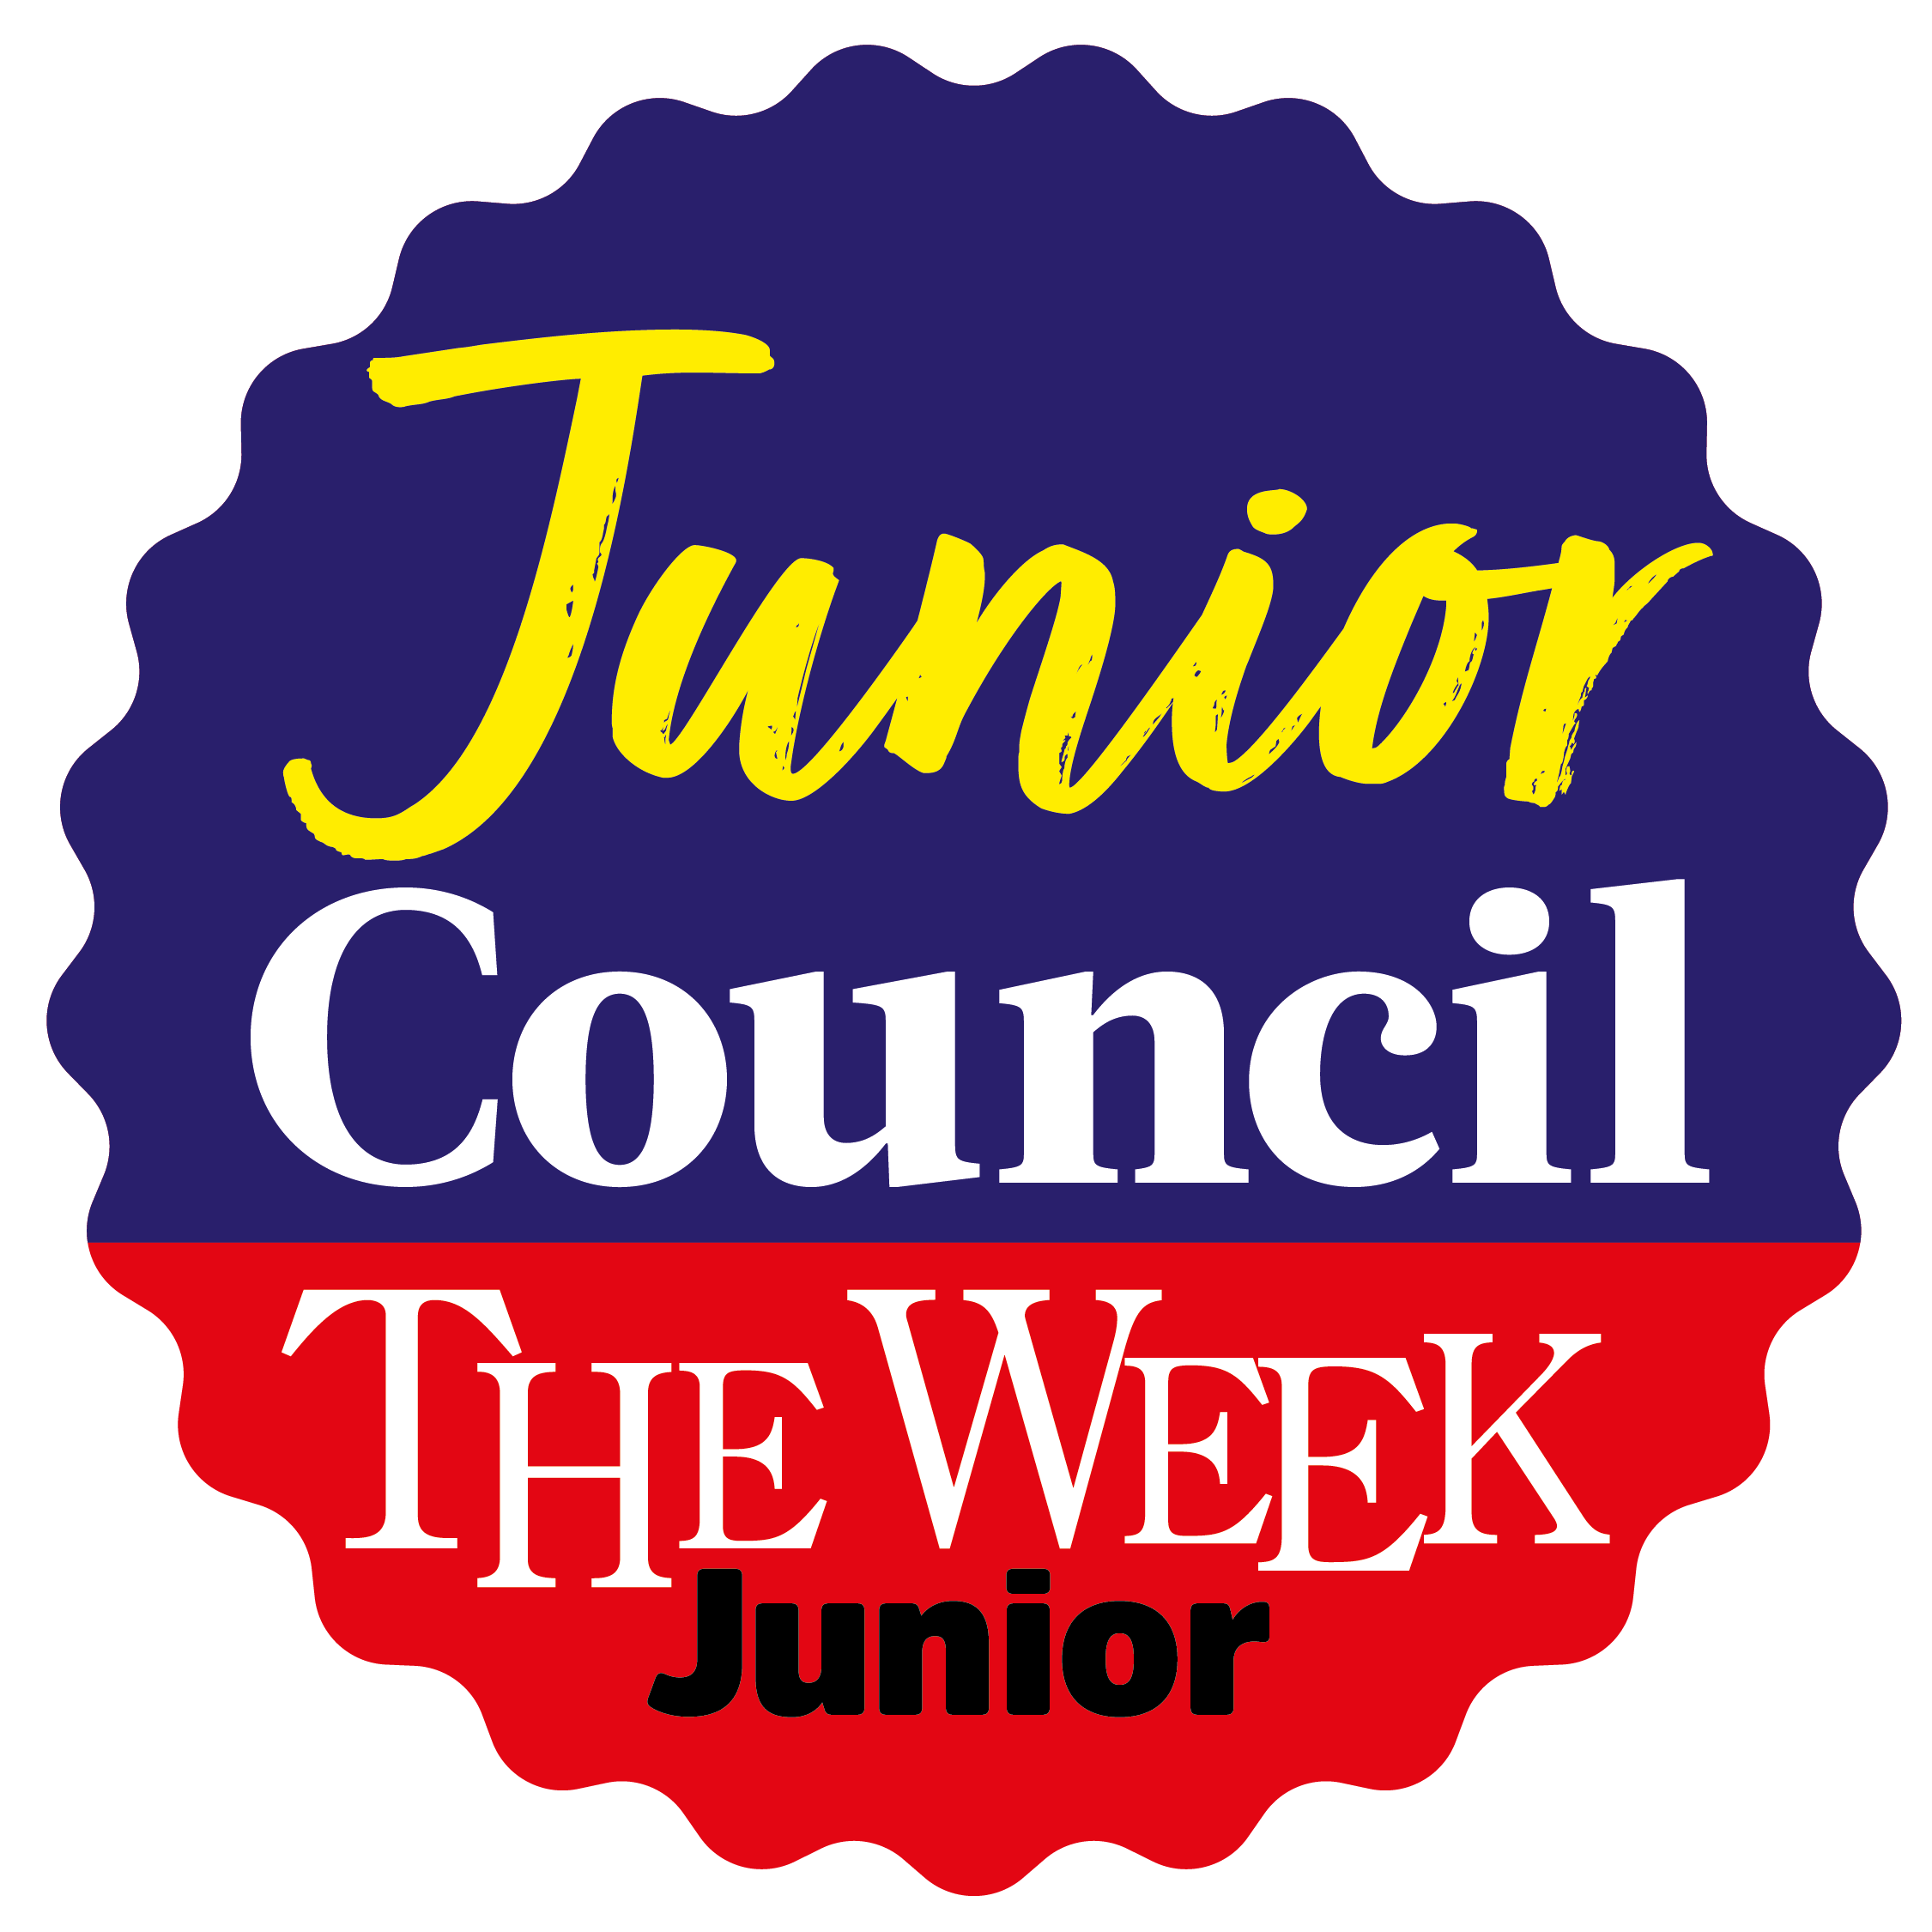 Junior council logo